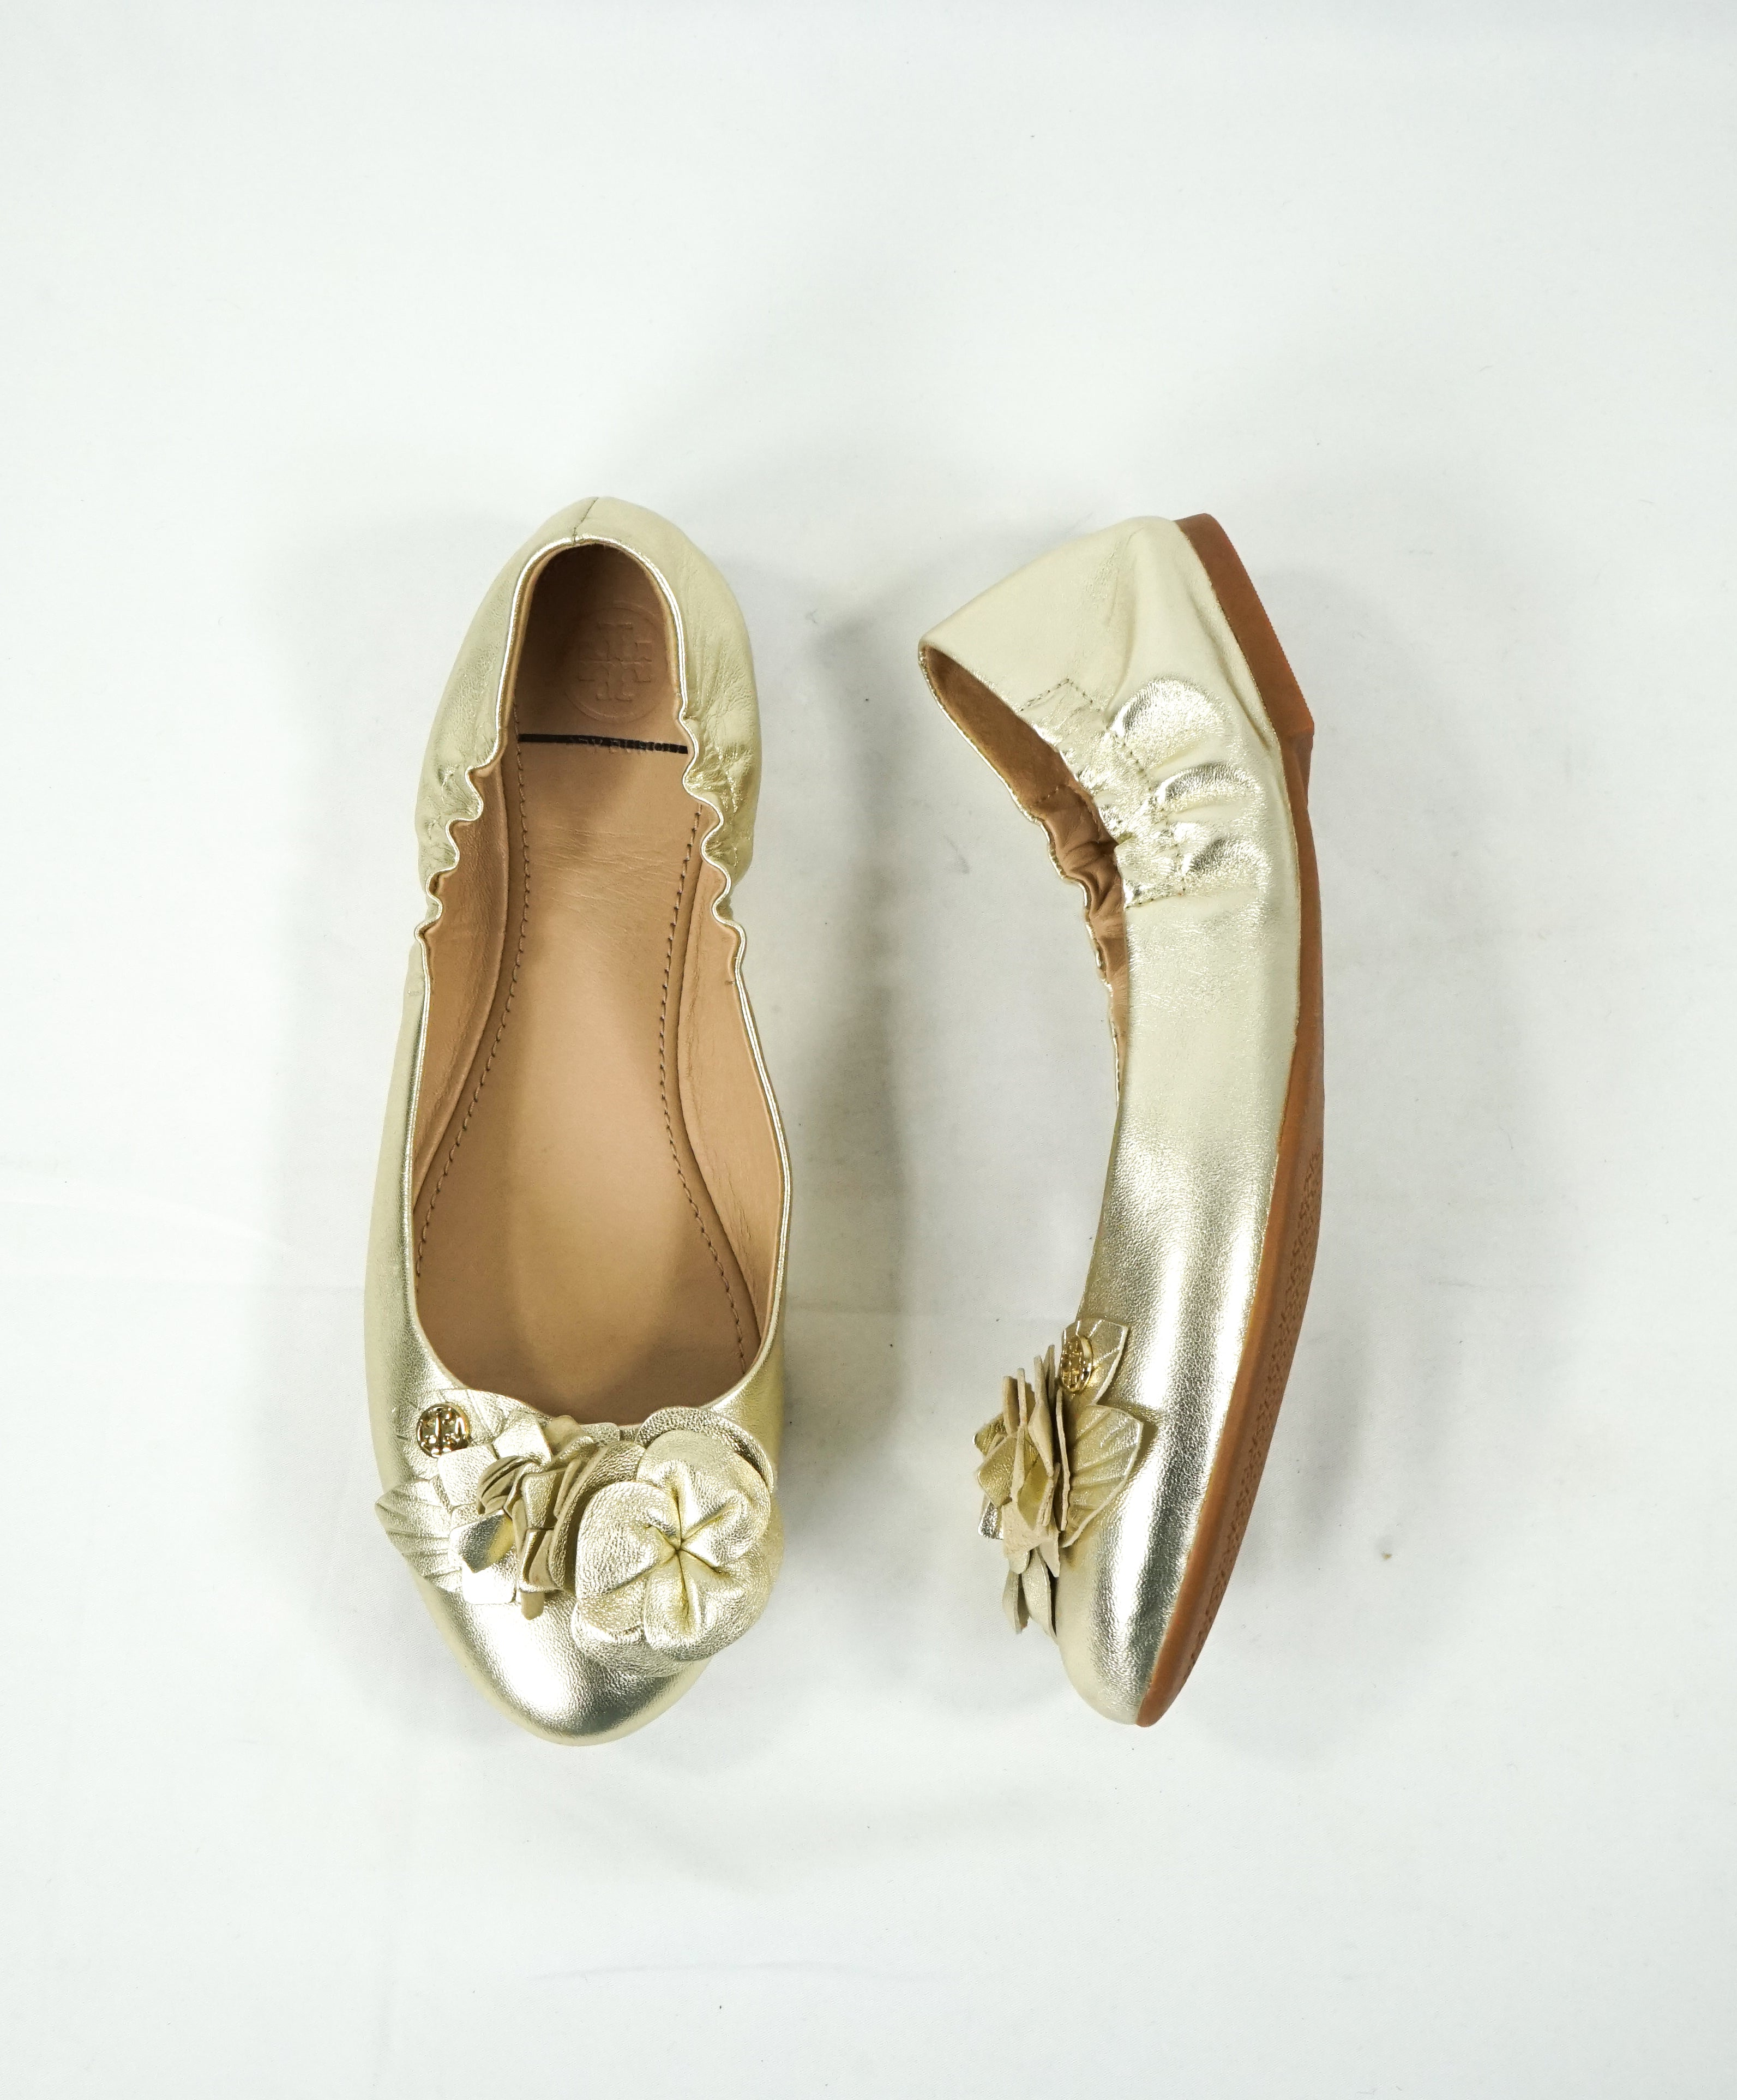 7d546d050015 TORY BURCH - Gold Tone Abstract Flower Bow Flats W Logo - 7.5 – Luxe ...